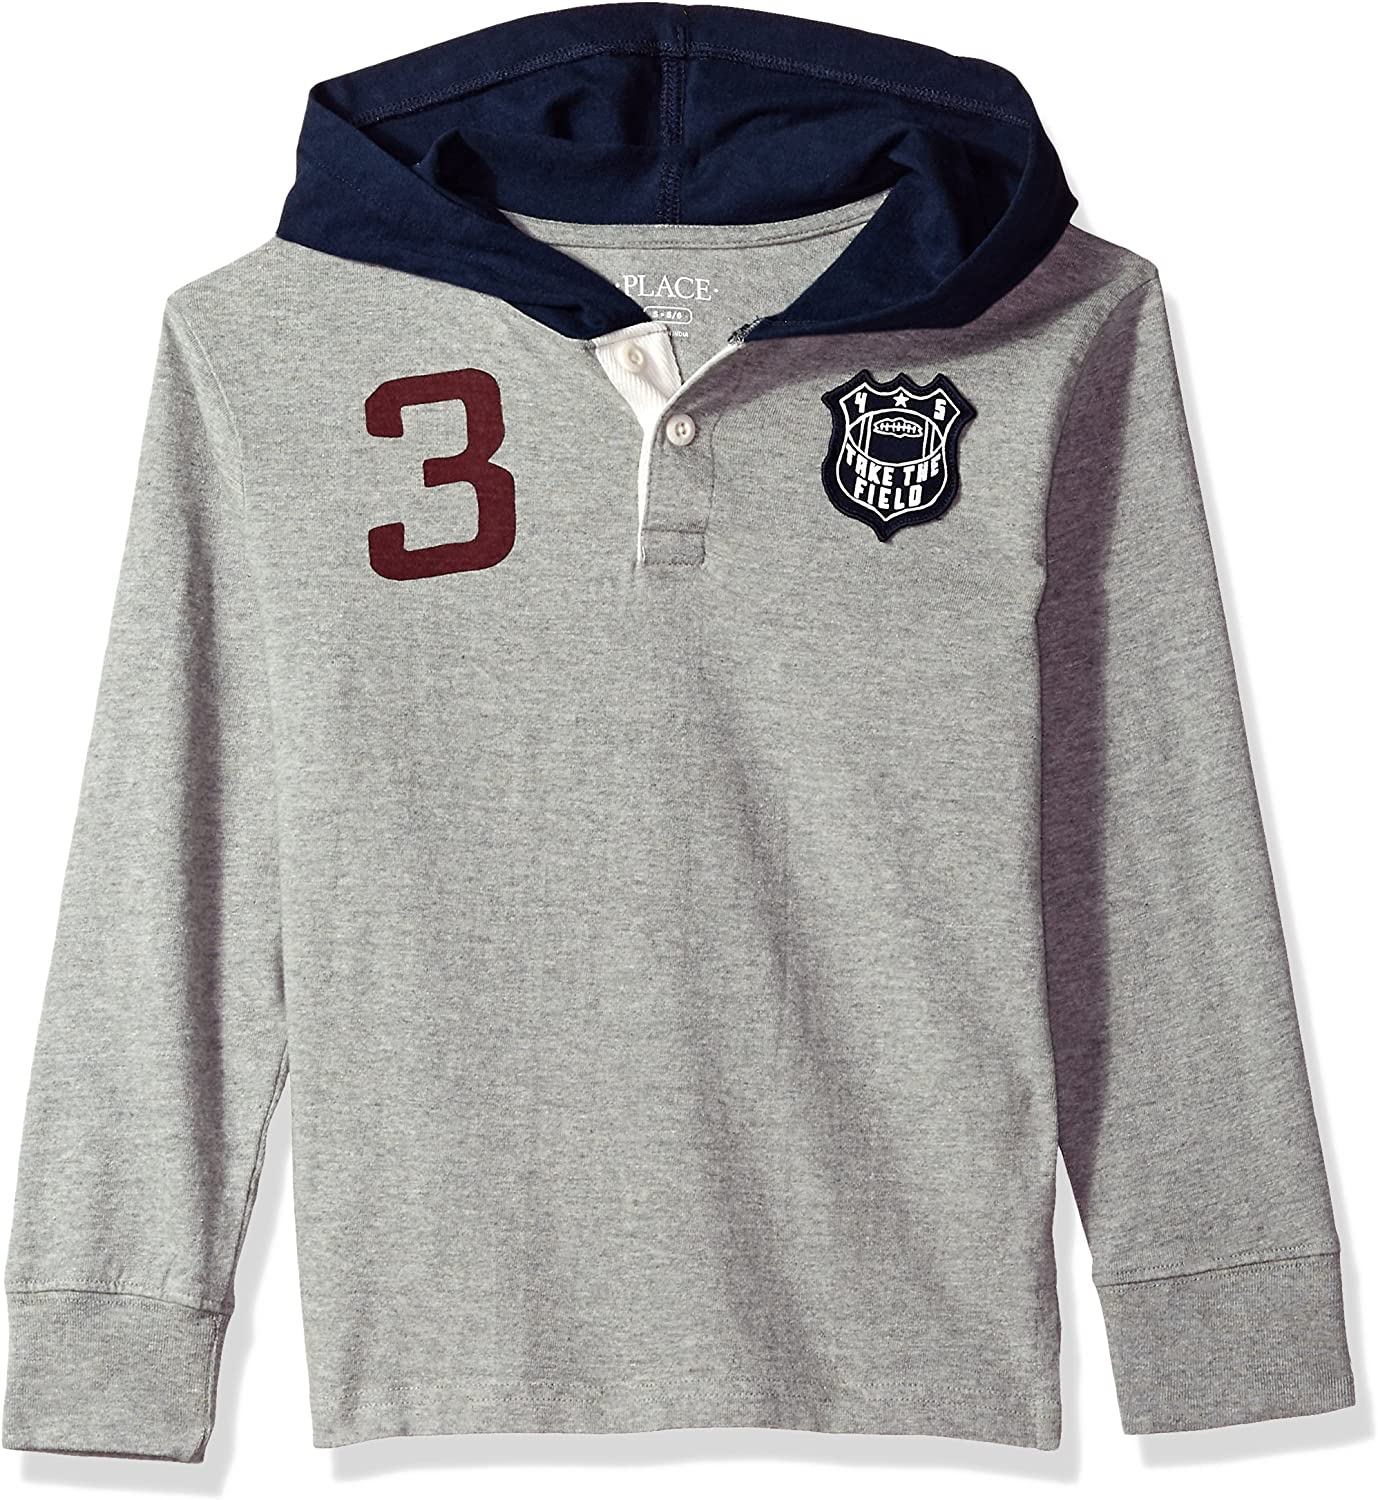 The Children's Place Baby Boys' Long Sleeve Knit Hoodie